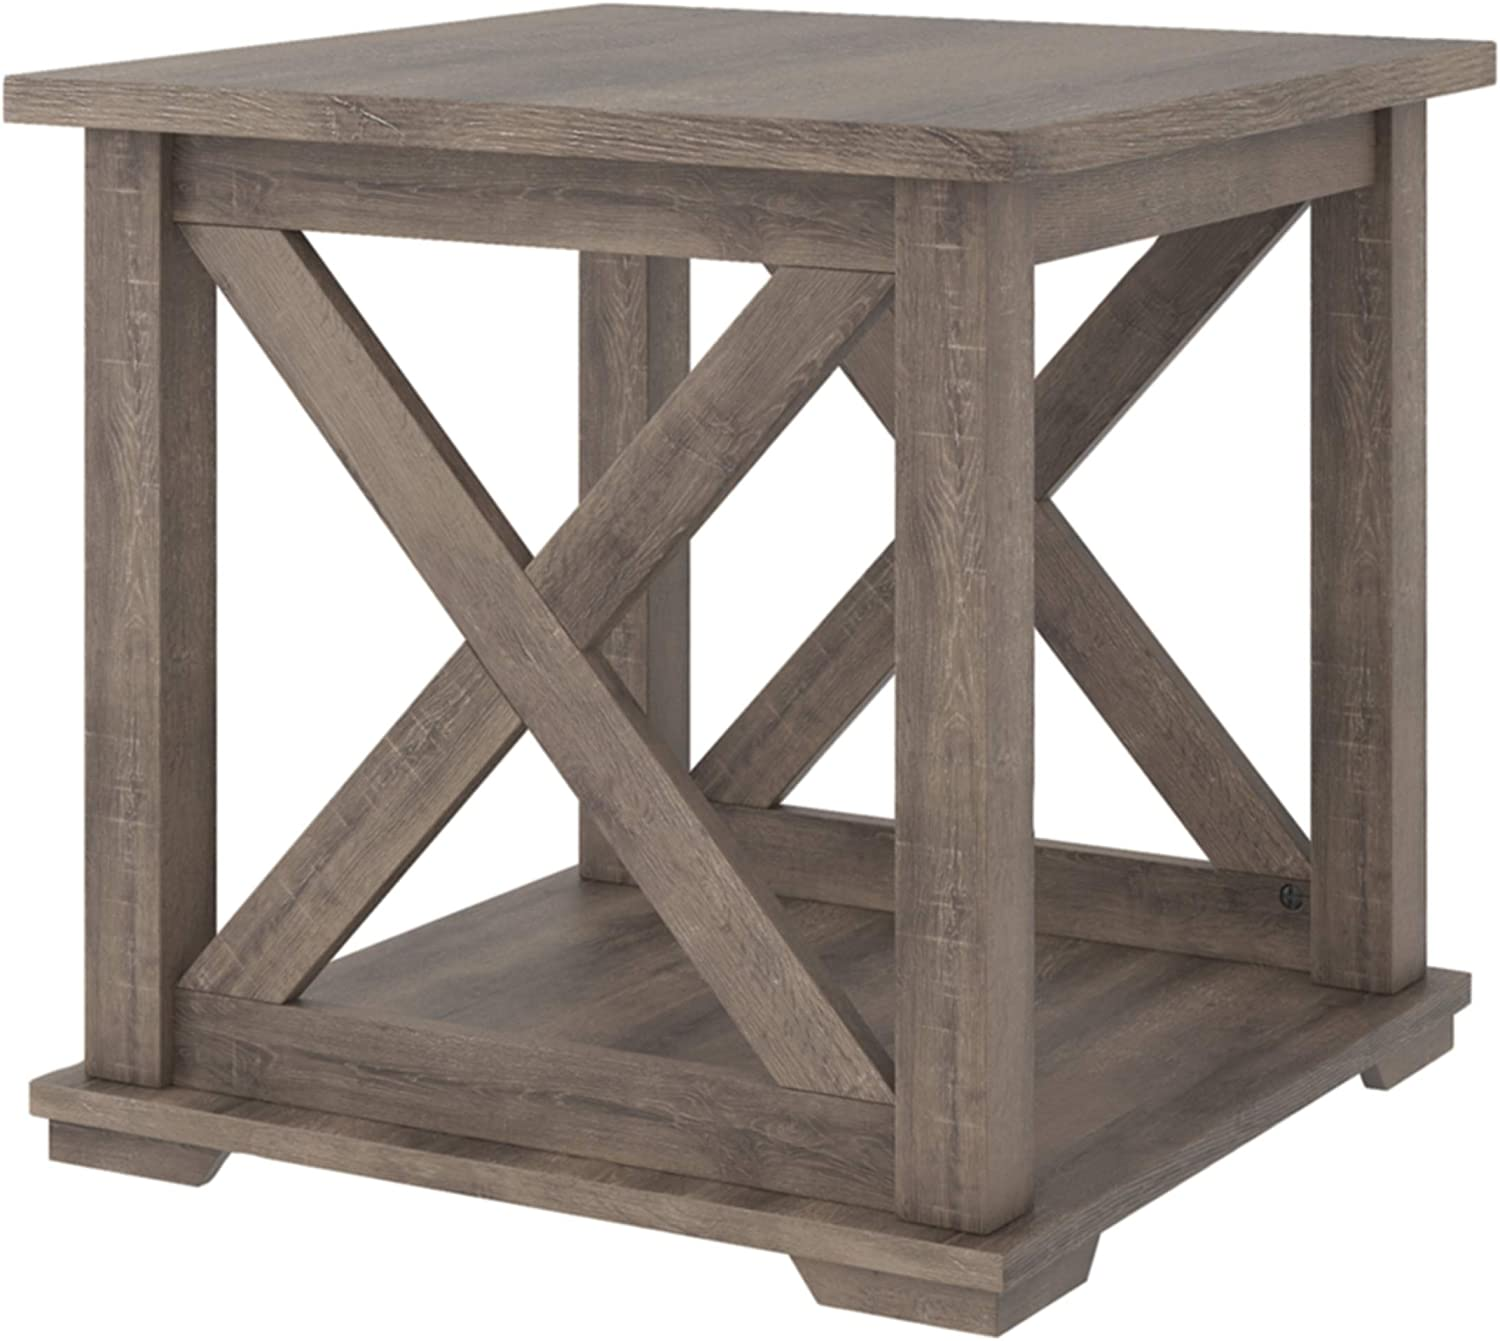 Signature Design by Ashley Arlenbry End Table, Gray